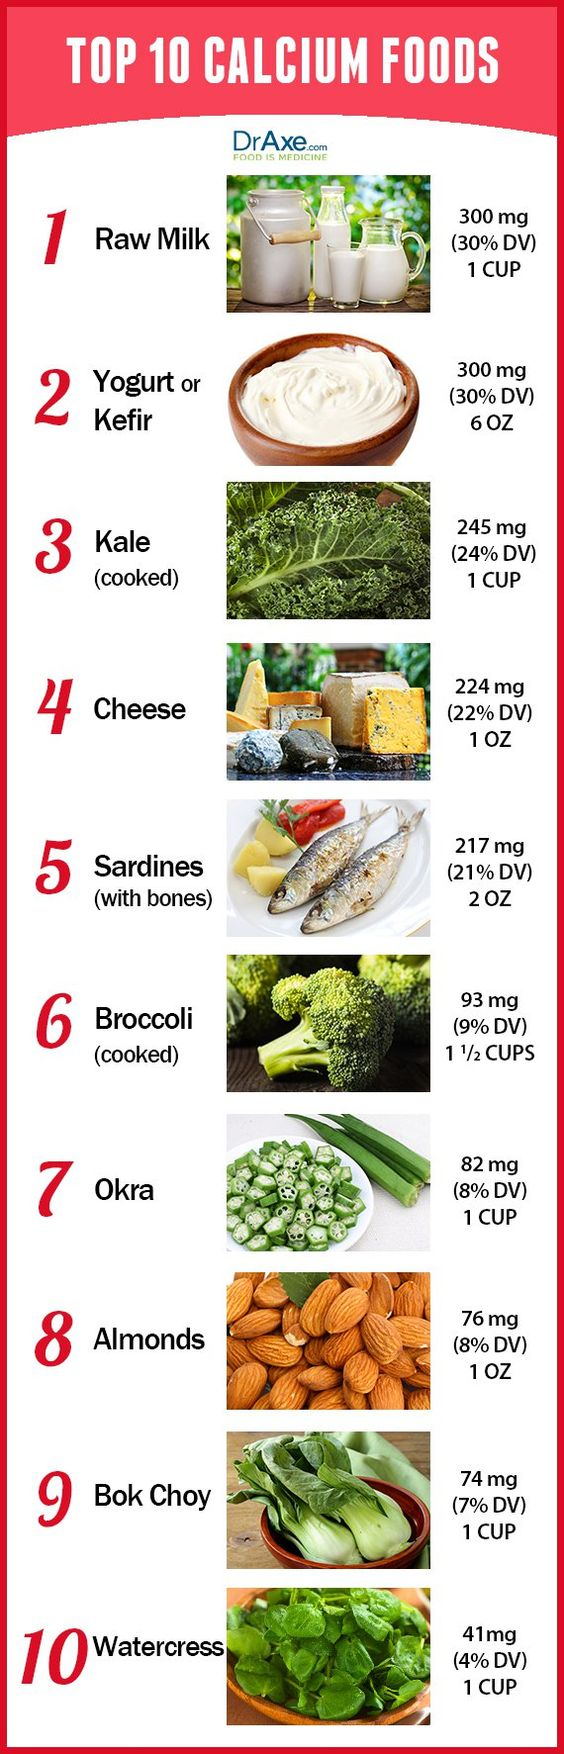 Top 10 Calcium Rich Foods - DrAxe.com: